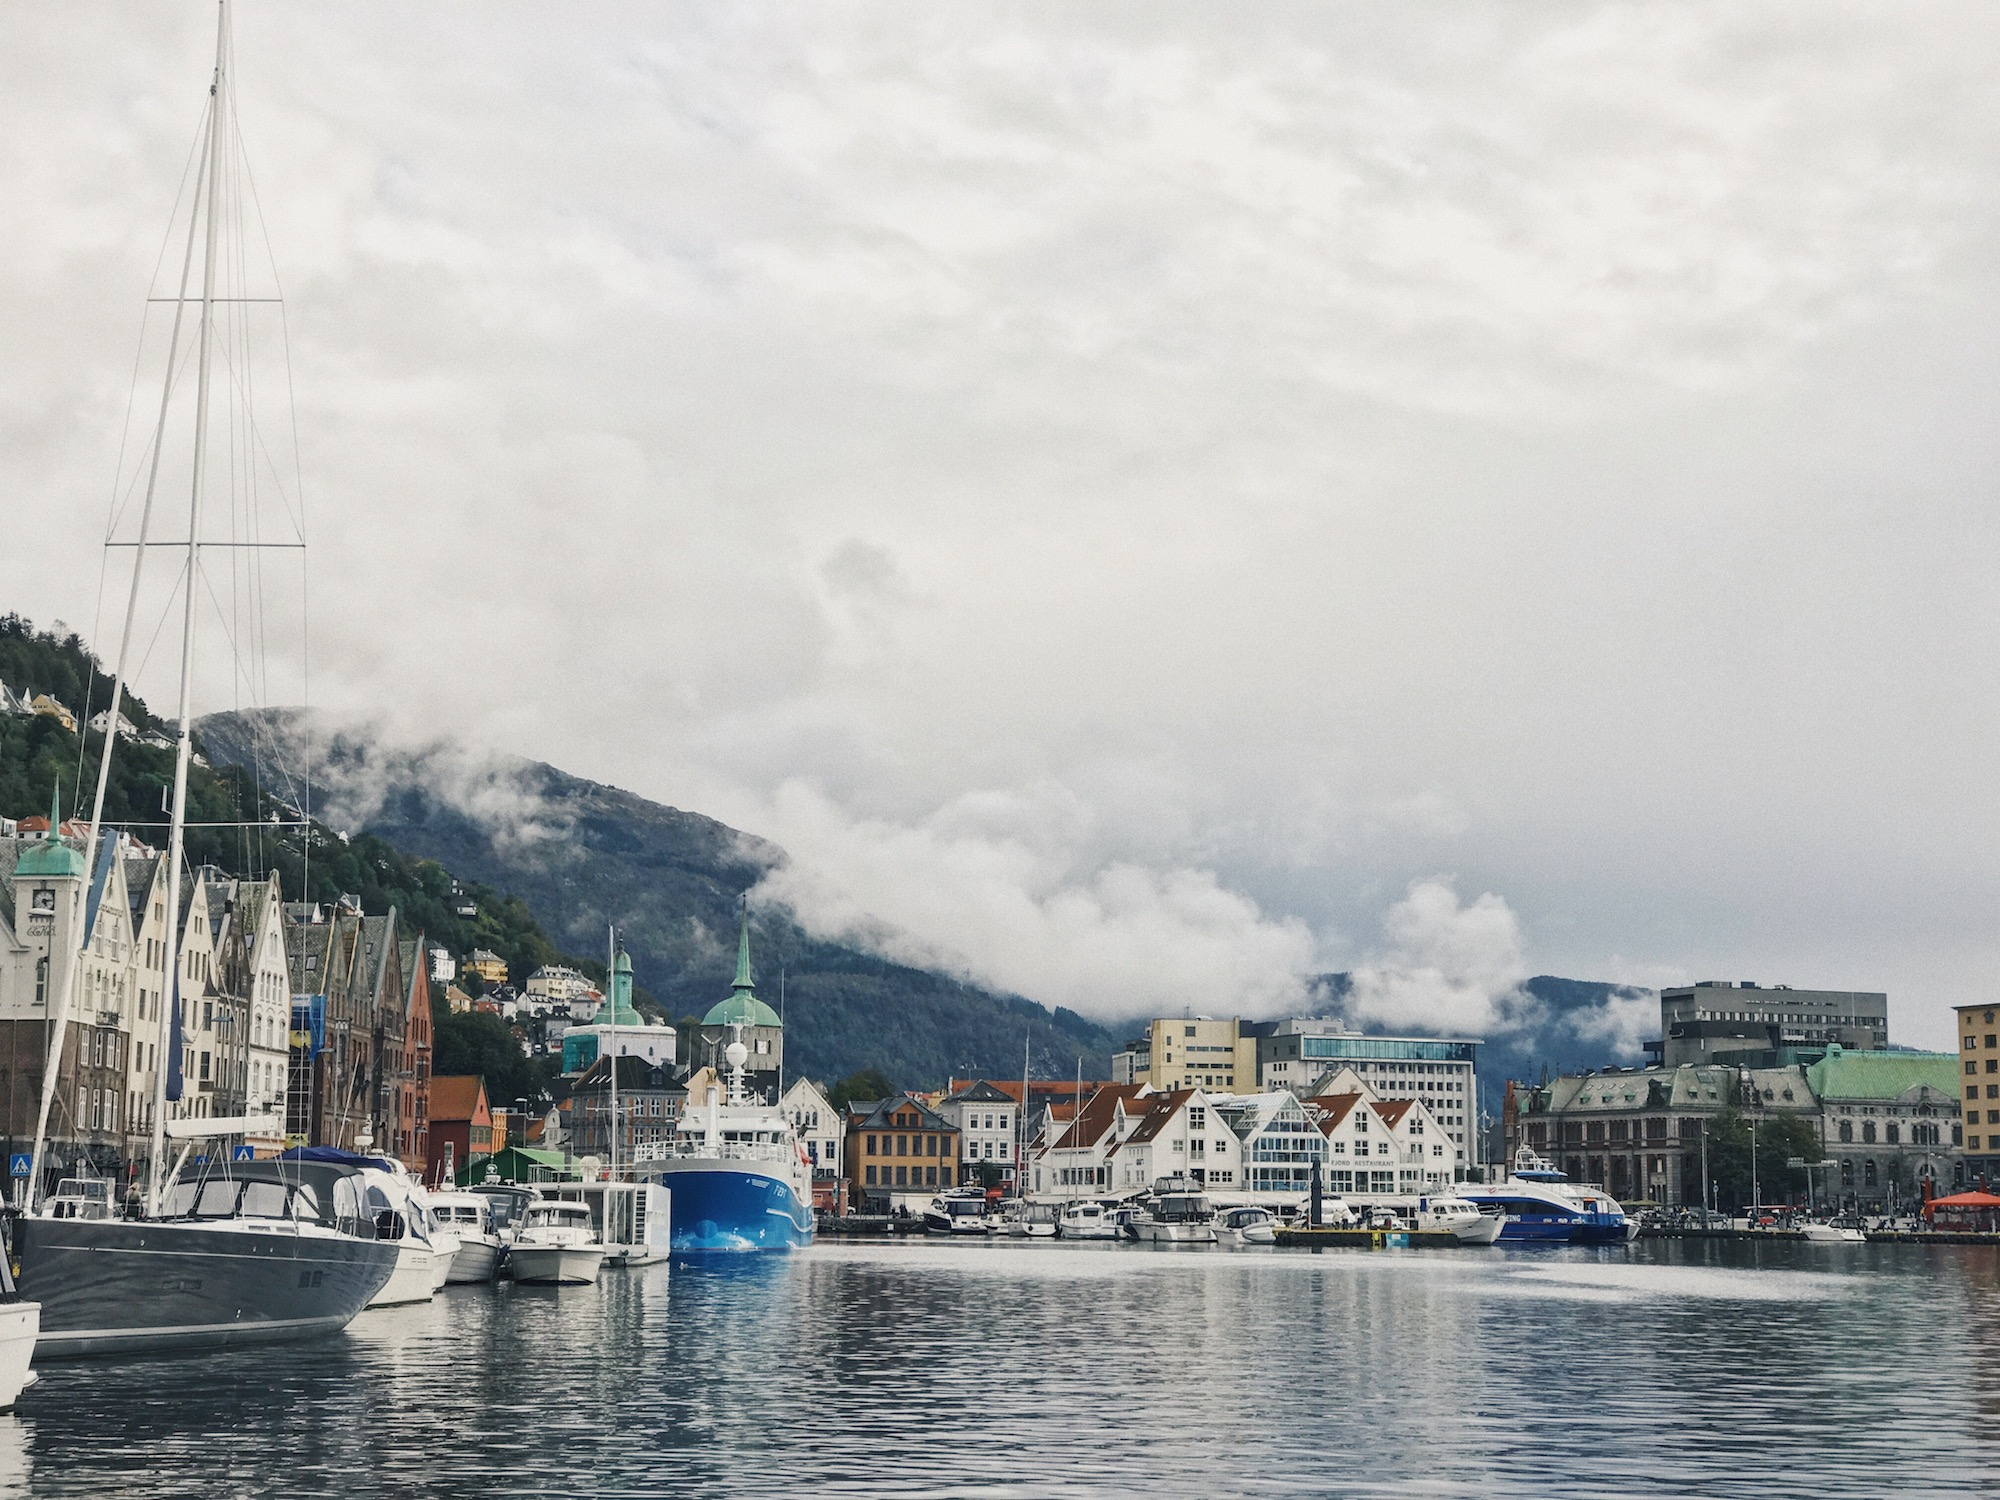 The port - Bergen is one of the main port towns in the south of Norway and there a plenty of boats dotted around the harbour. This means fresh seafood is always the menu and we definitely ate at some great places.